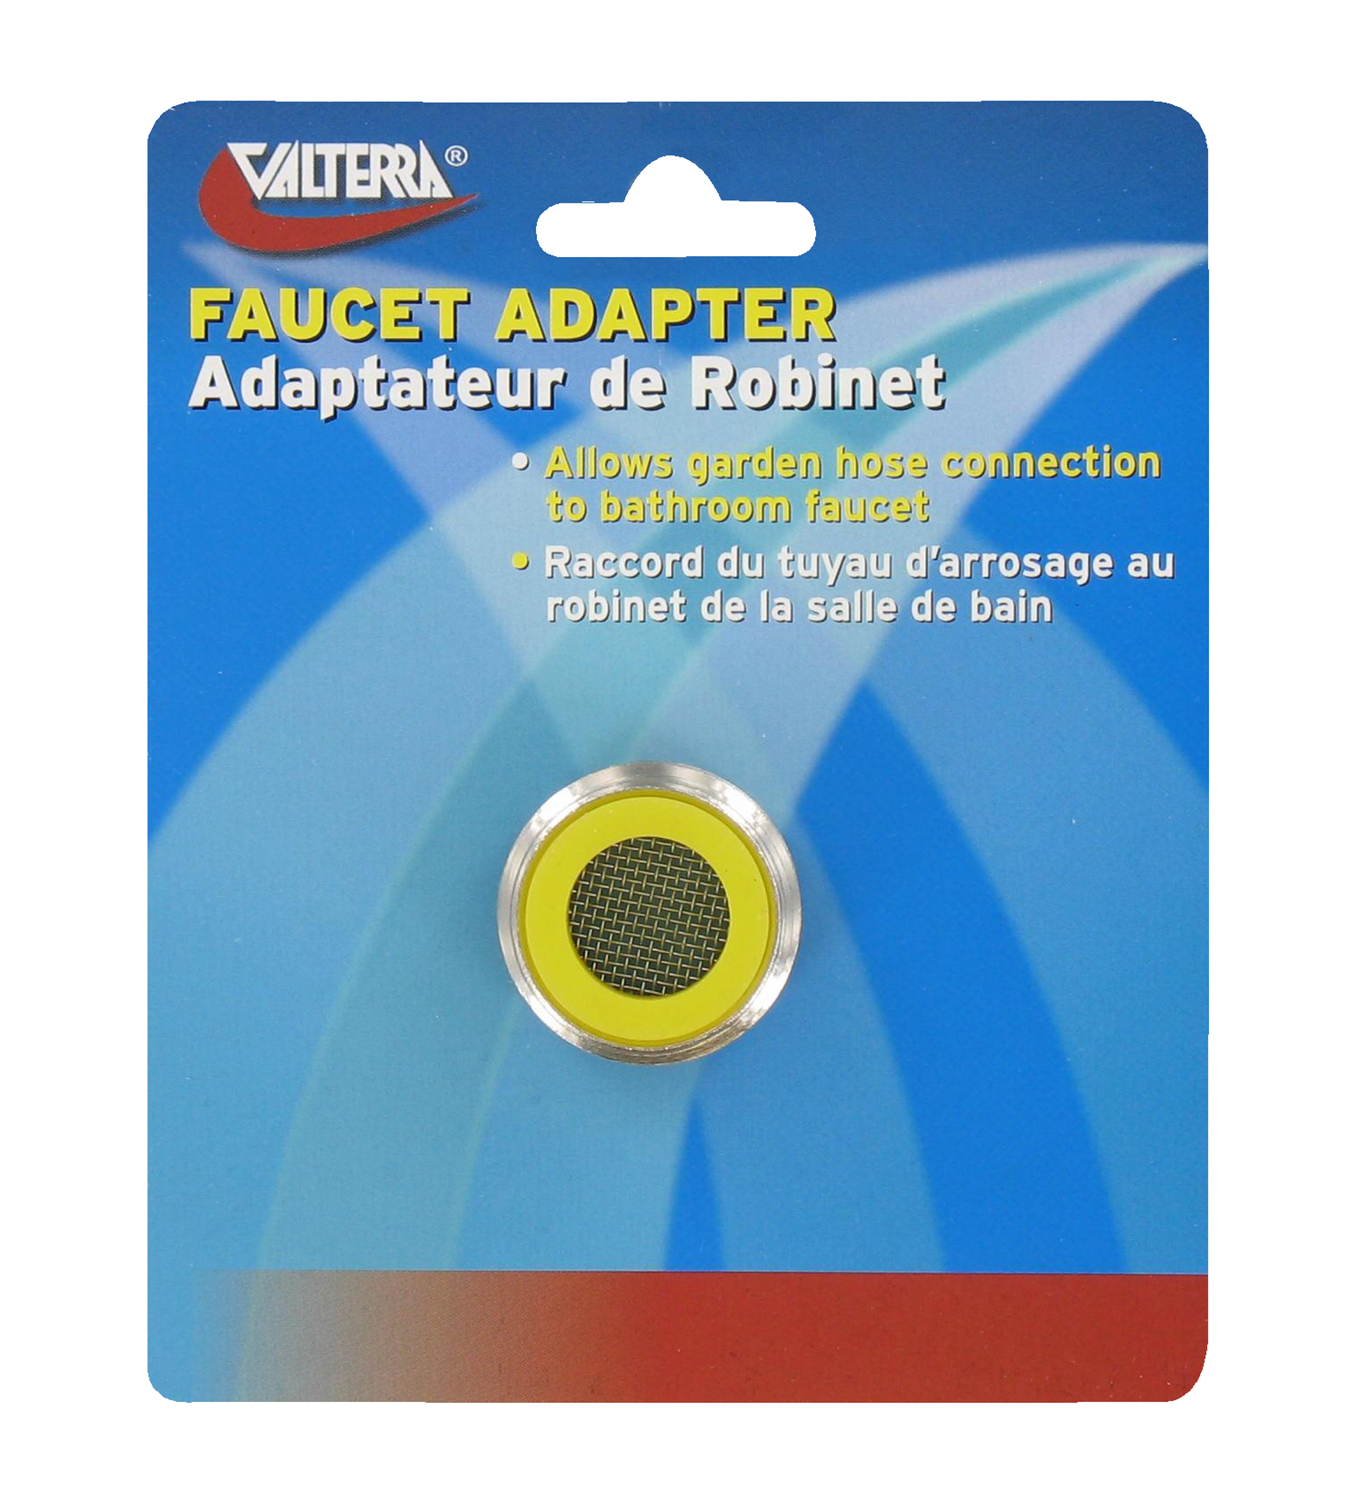 w1527vp valterra faucet hose adapter used to connect garden hose to faucet